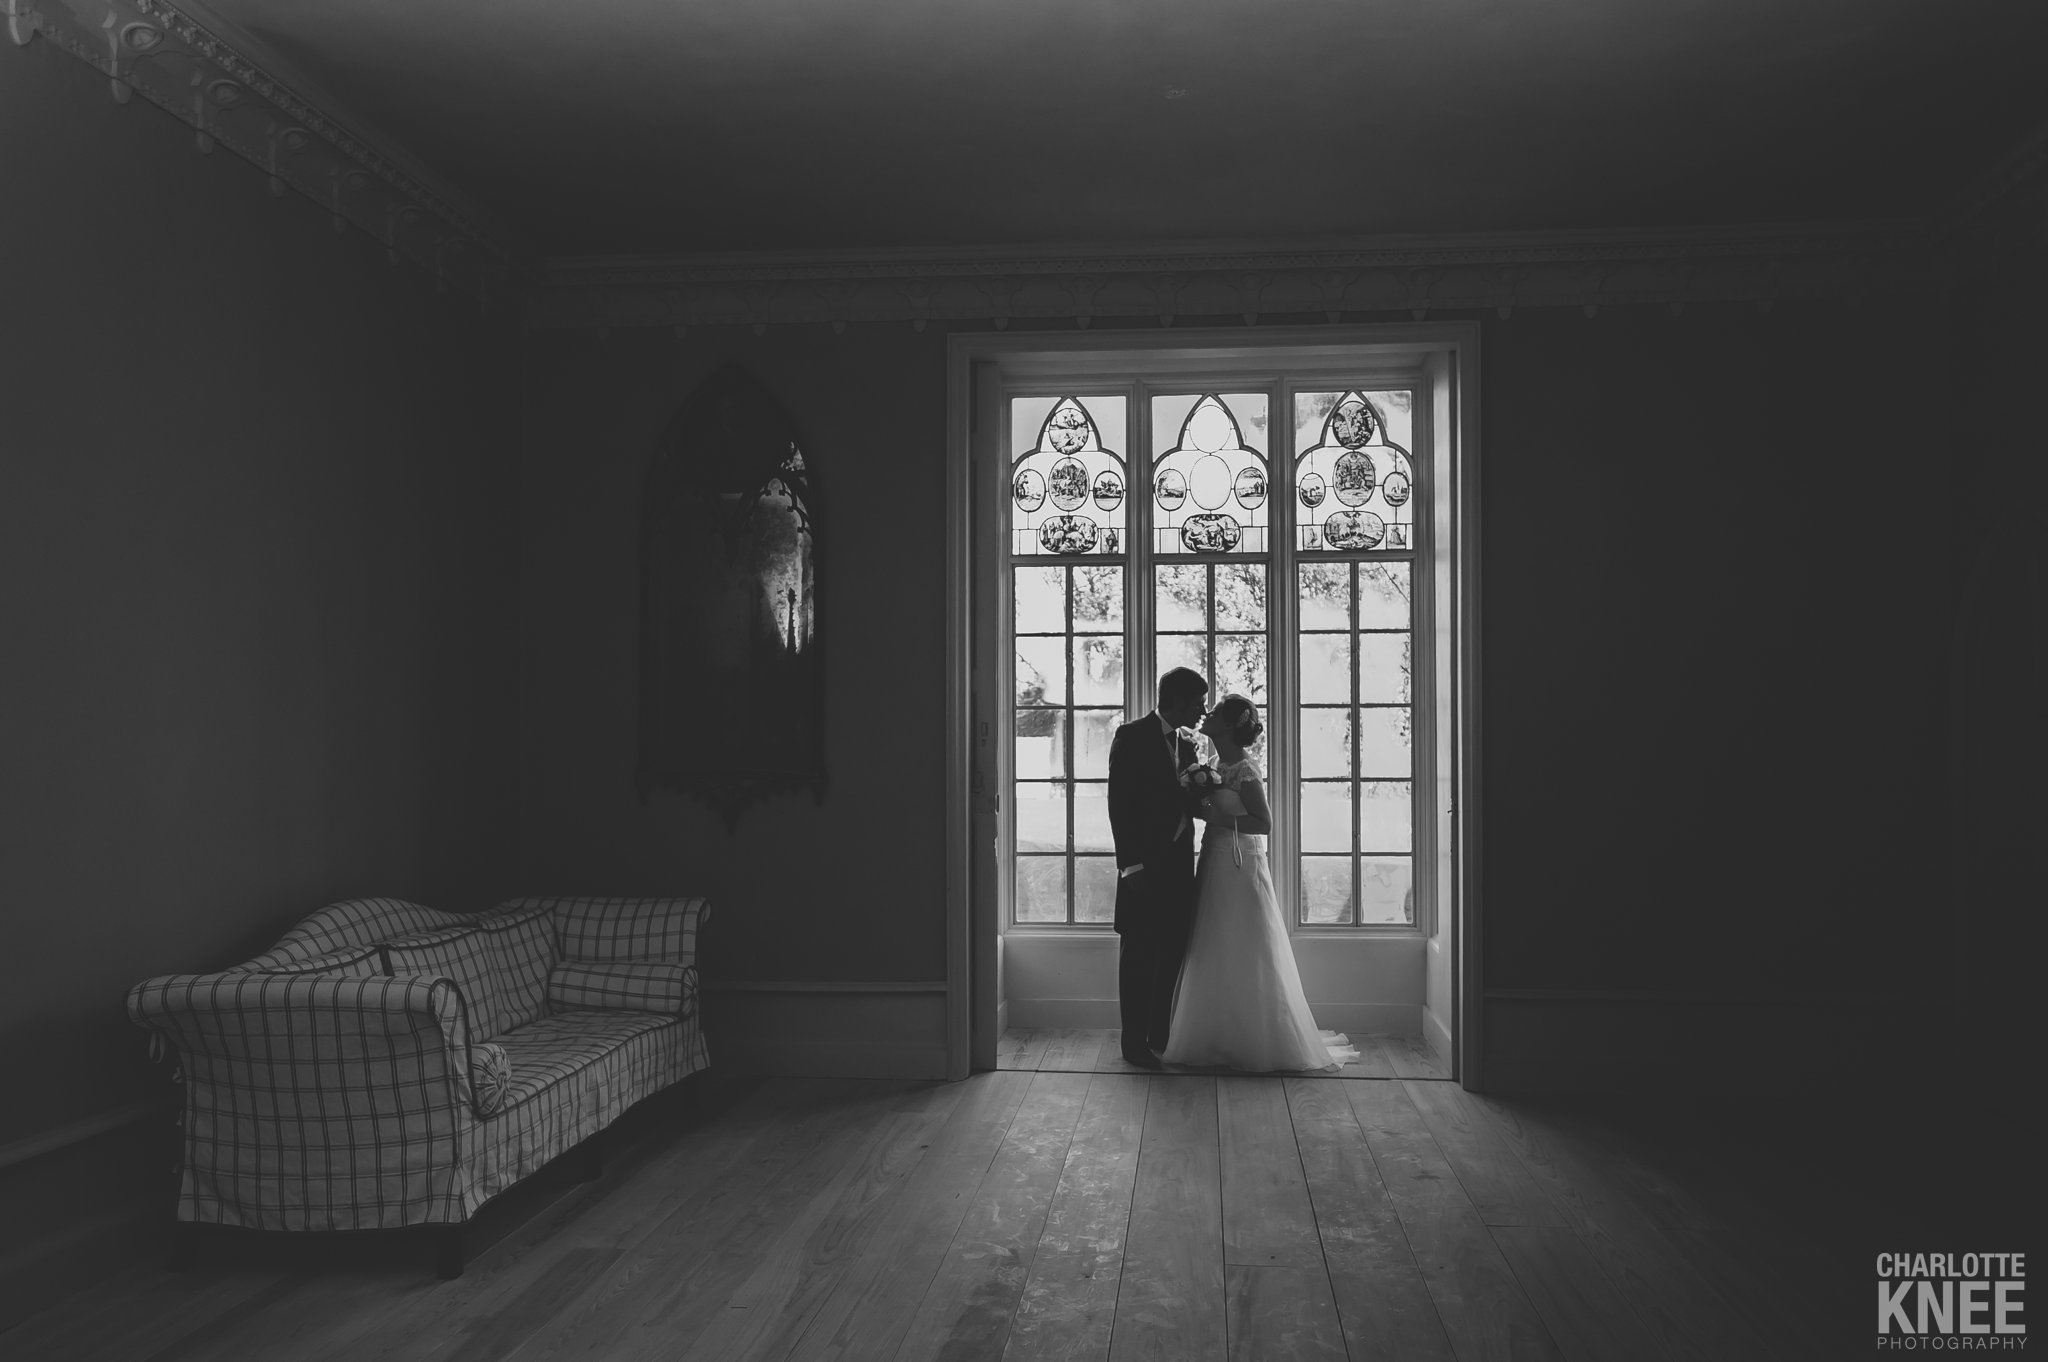 LONDON-WEDDING-PHOTOGRAPHY-STRAWBERRY-HILL-HOUSE-Charlotte-Knee-Photography_0054.jpg